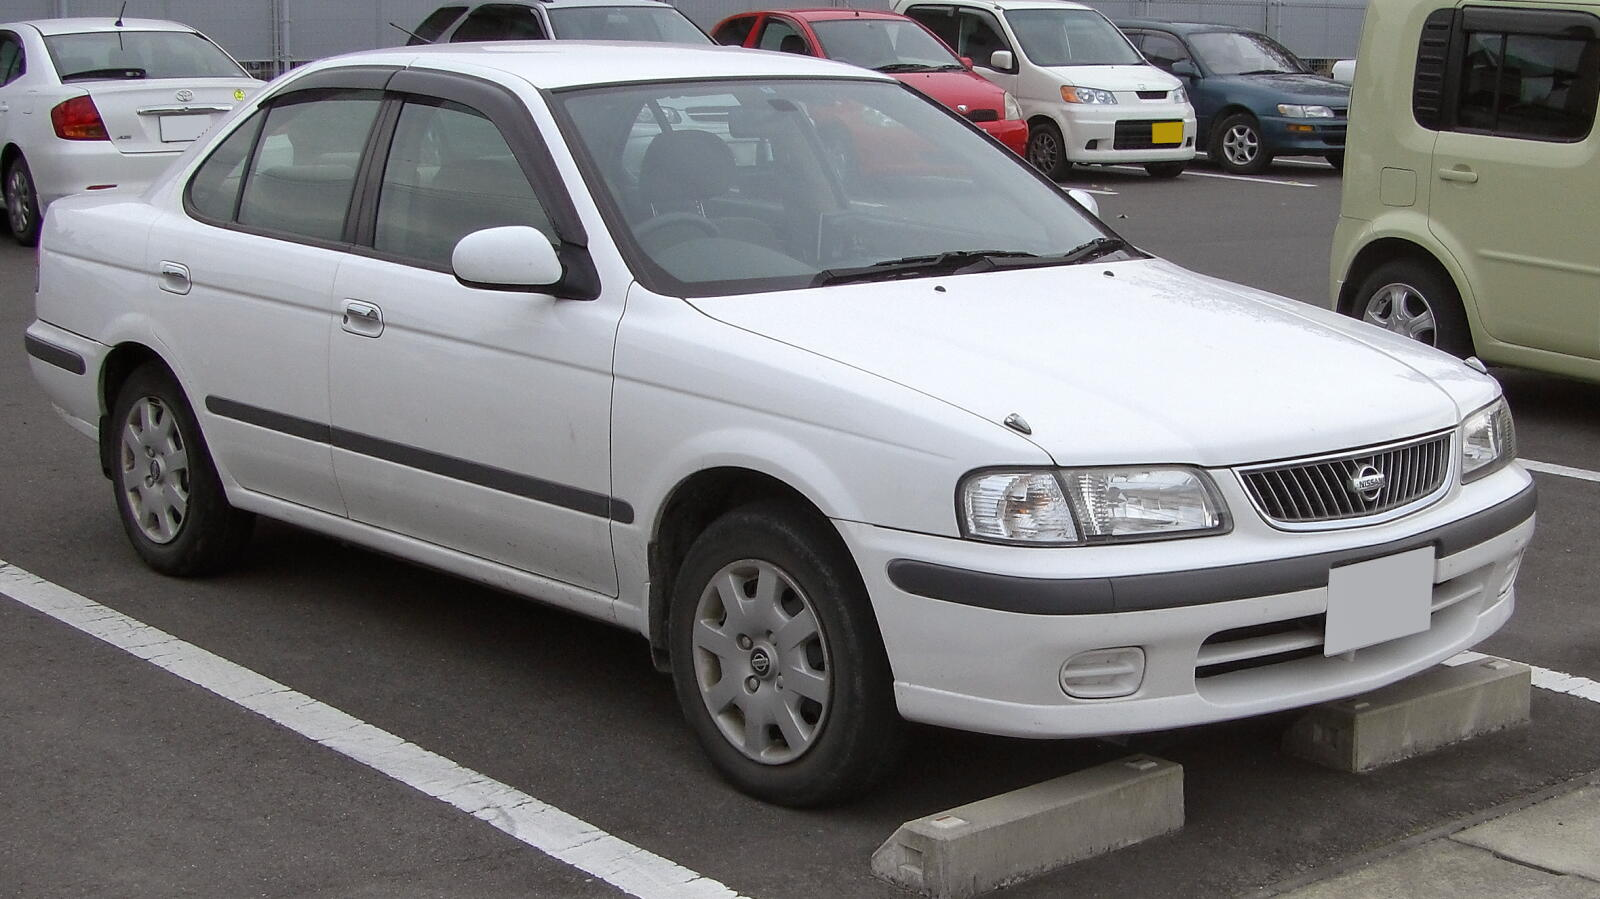 1998 Nissan Sunny B15 Pictures Information And Specs